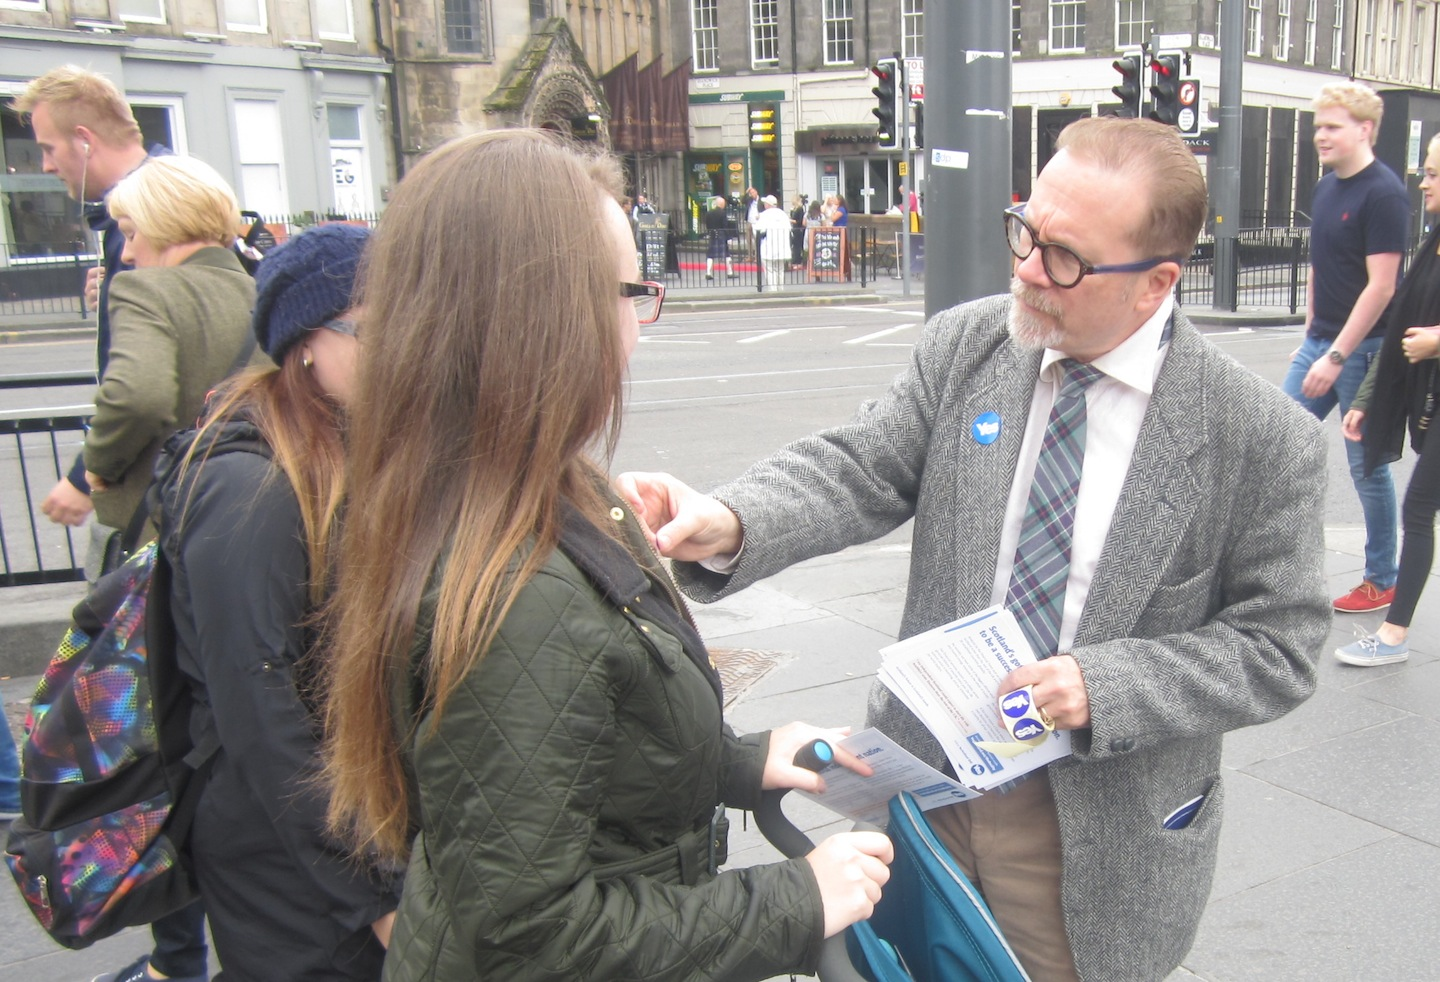 Joe Goldblatt, a Texan who gained Scottish citizenship in July, campaigns for Scottish independence in Edinburgh. (Ben Sales)